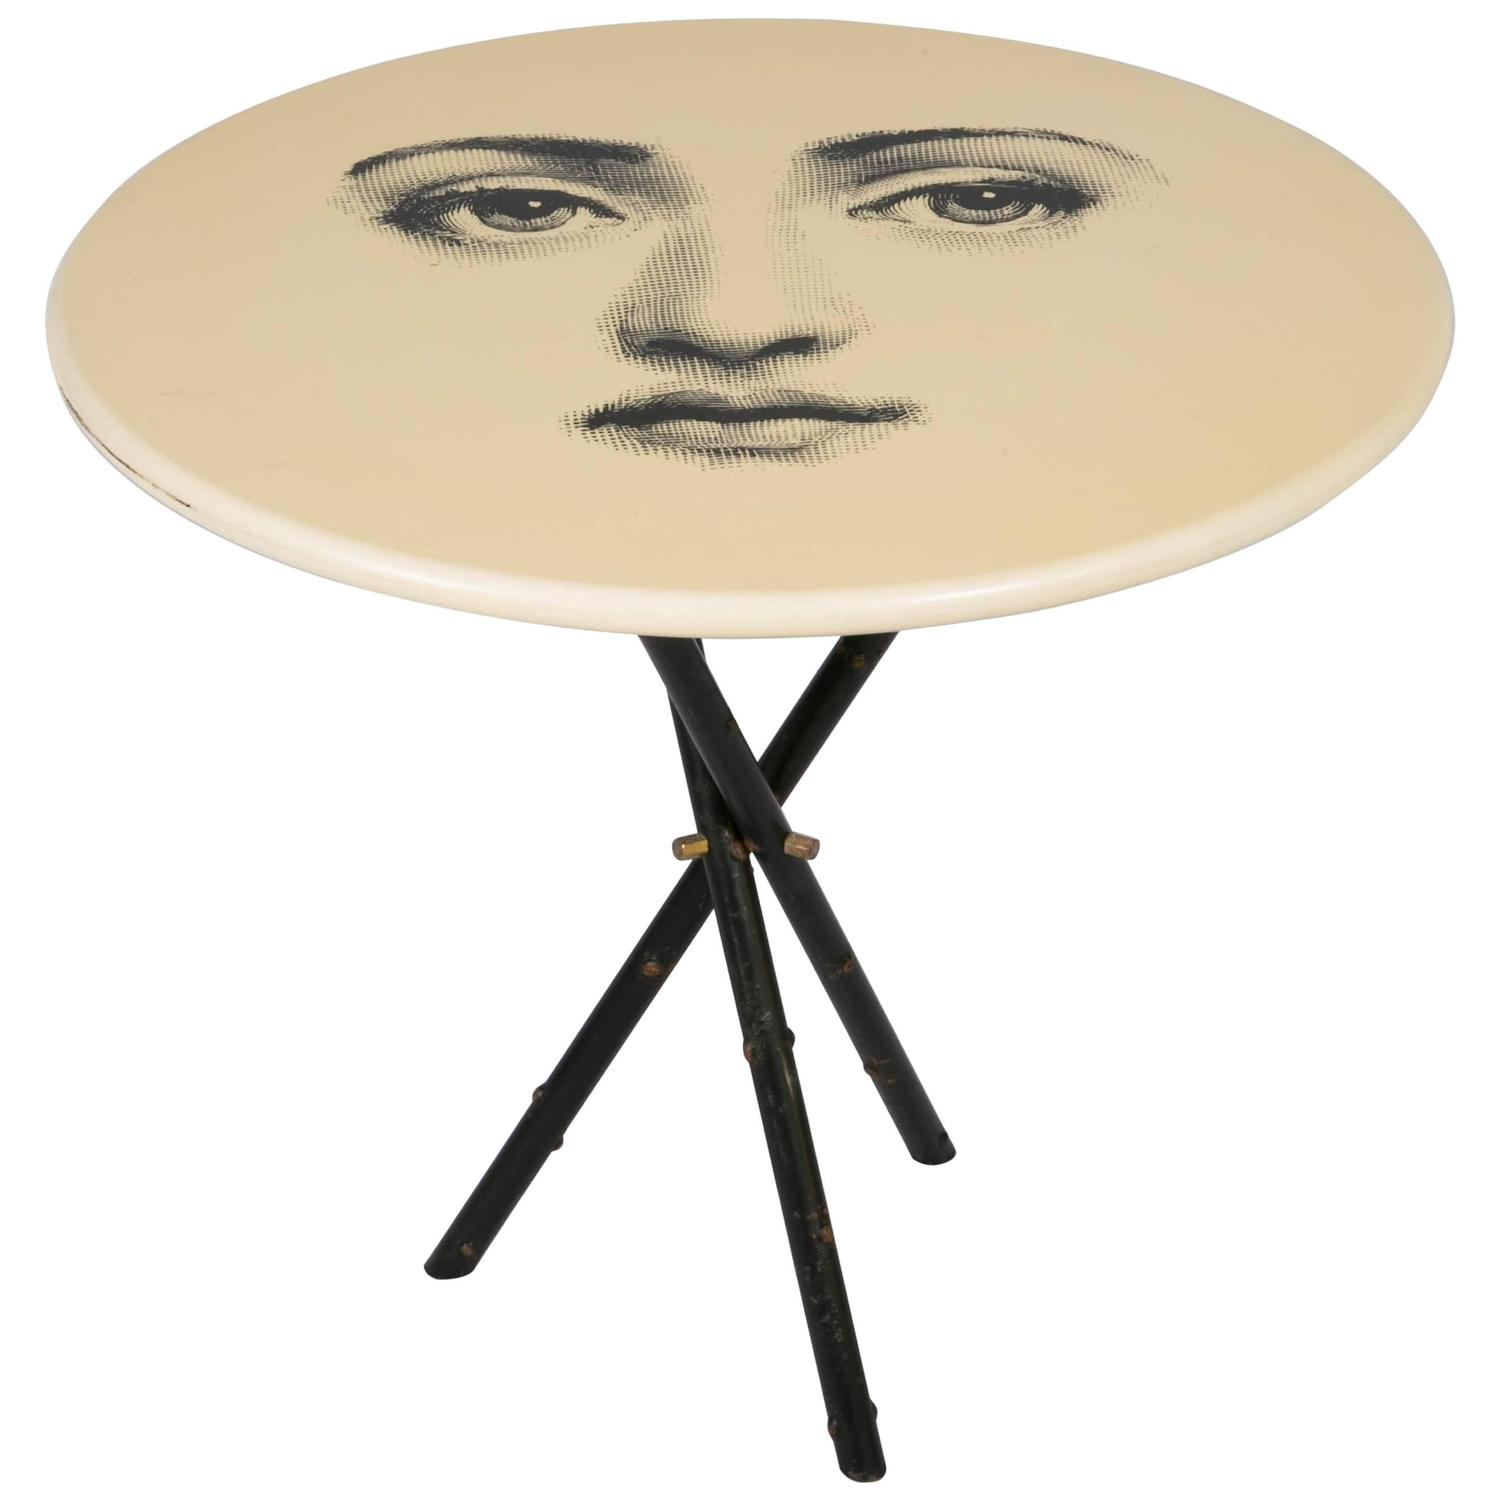 1960s iconic piero fornasetti table at 1stdibs for Iconic tables